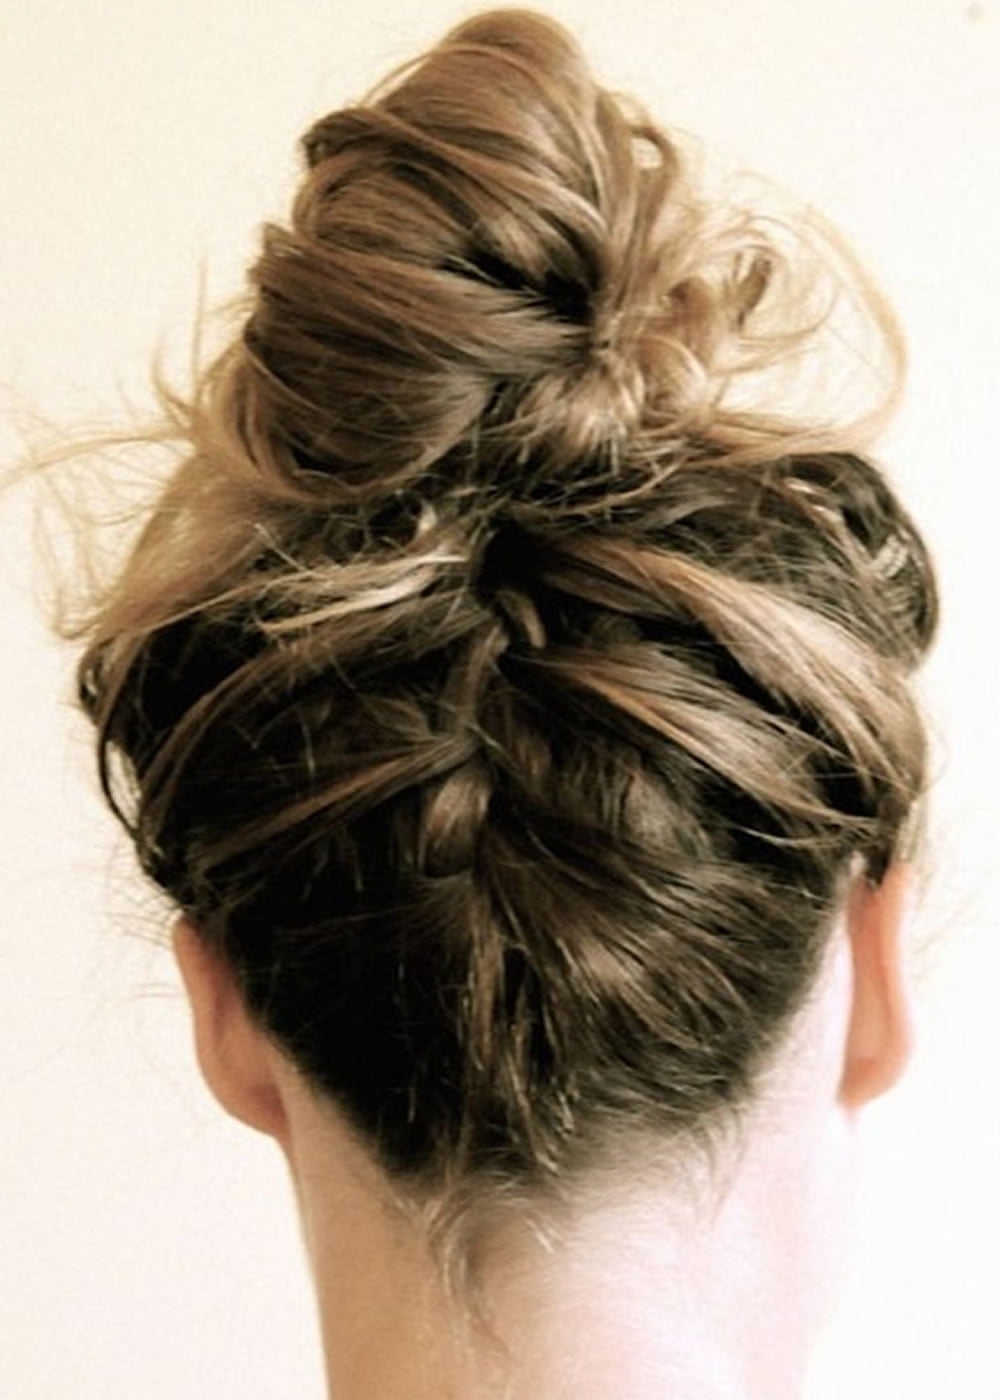 25 Very Stylish Soft Braided Hairstyles Ideas 2018 2019